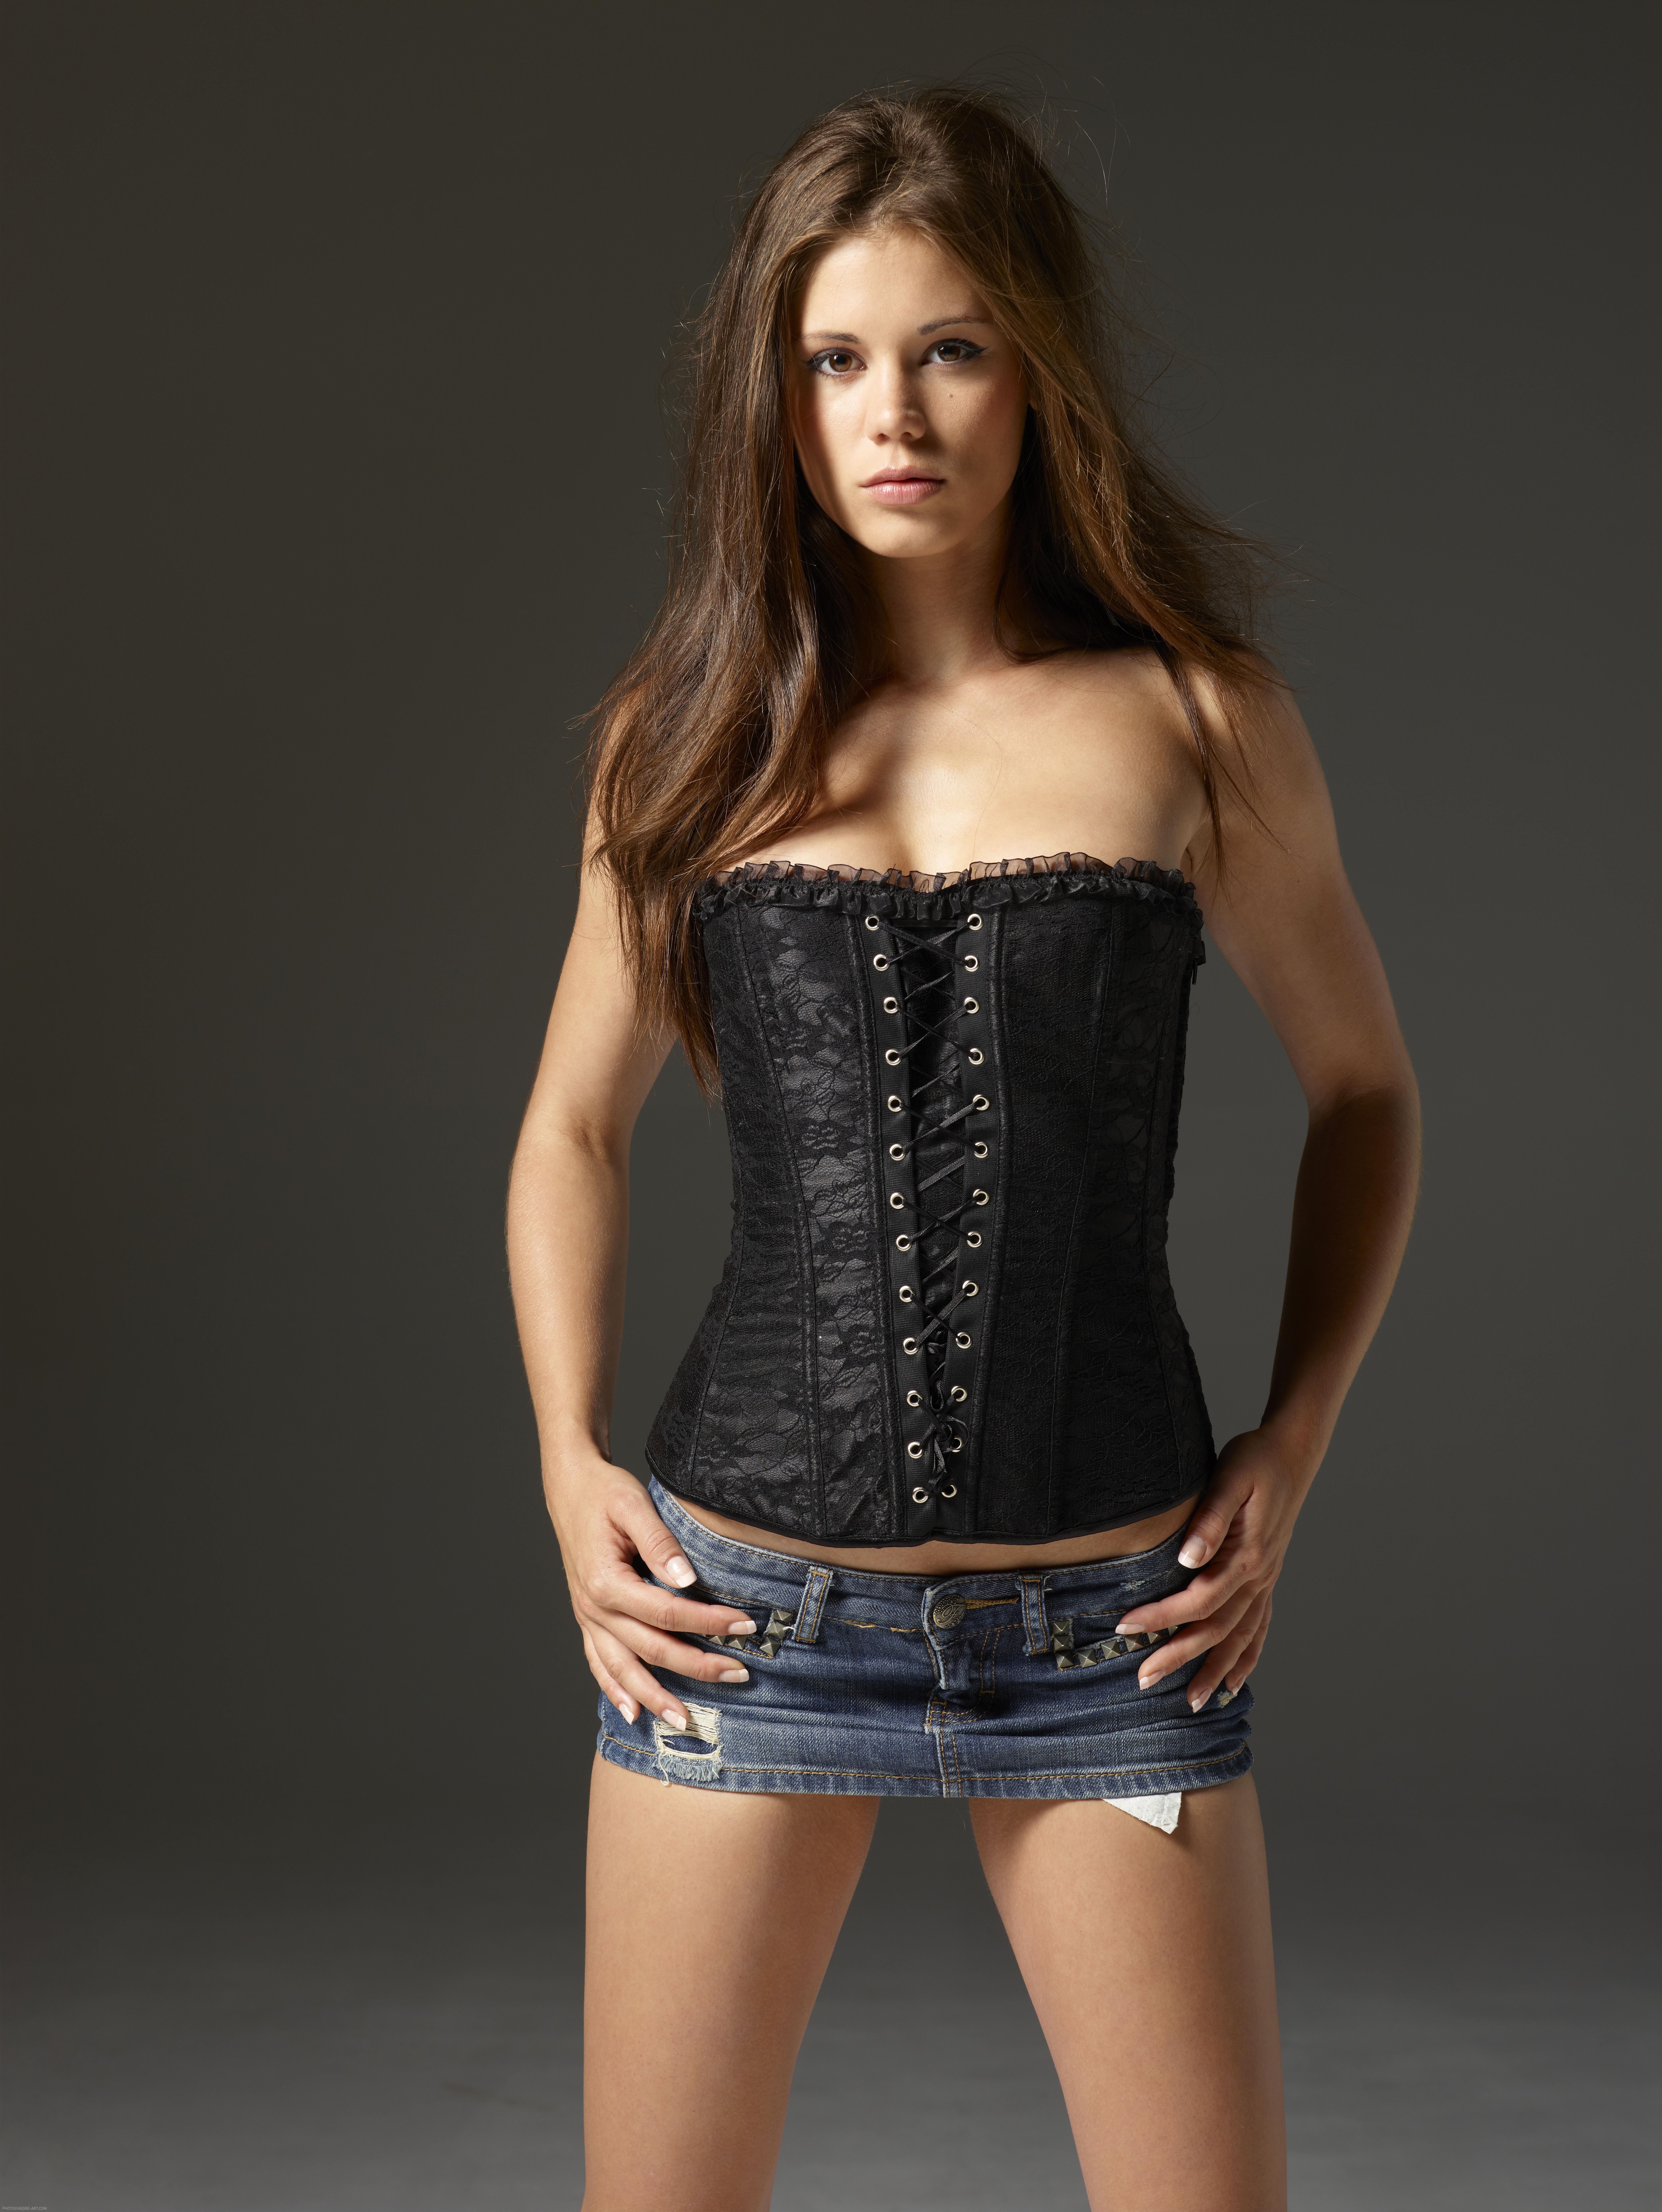 woman corset Little Caprice HD Wallpaper